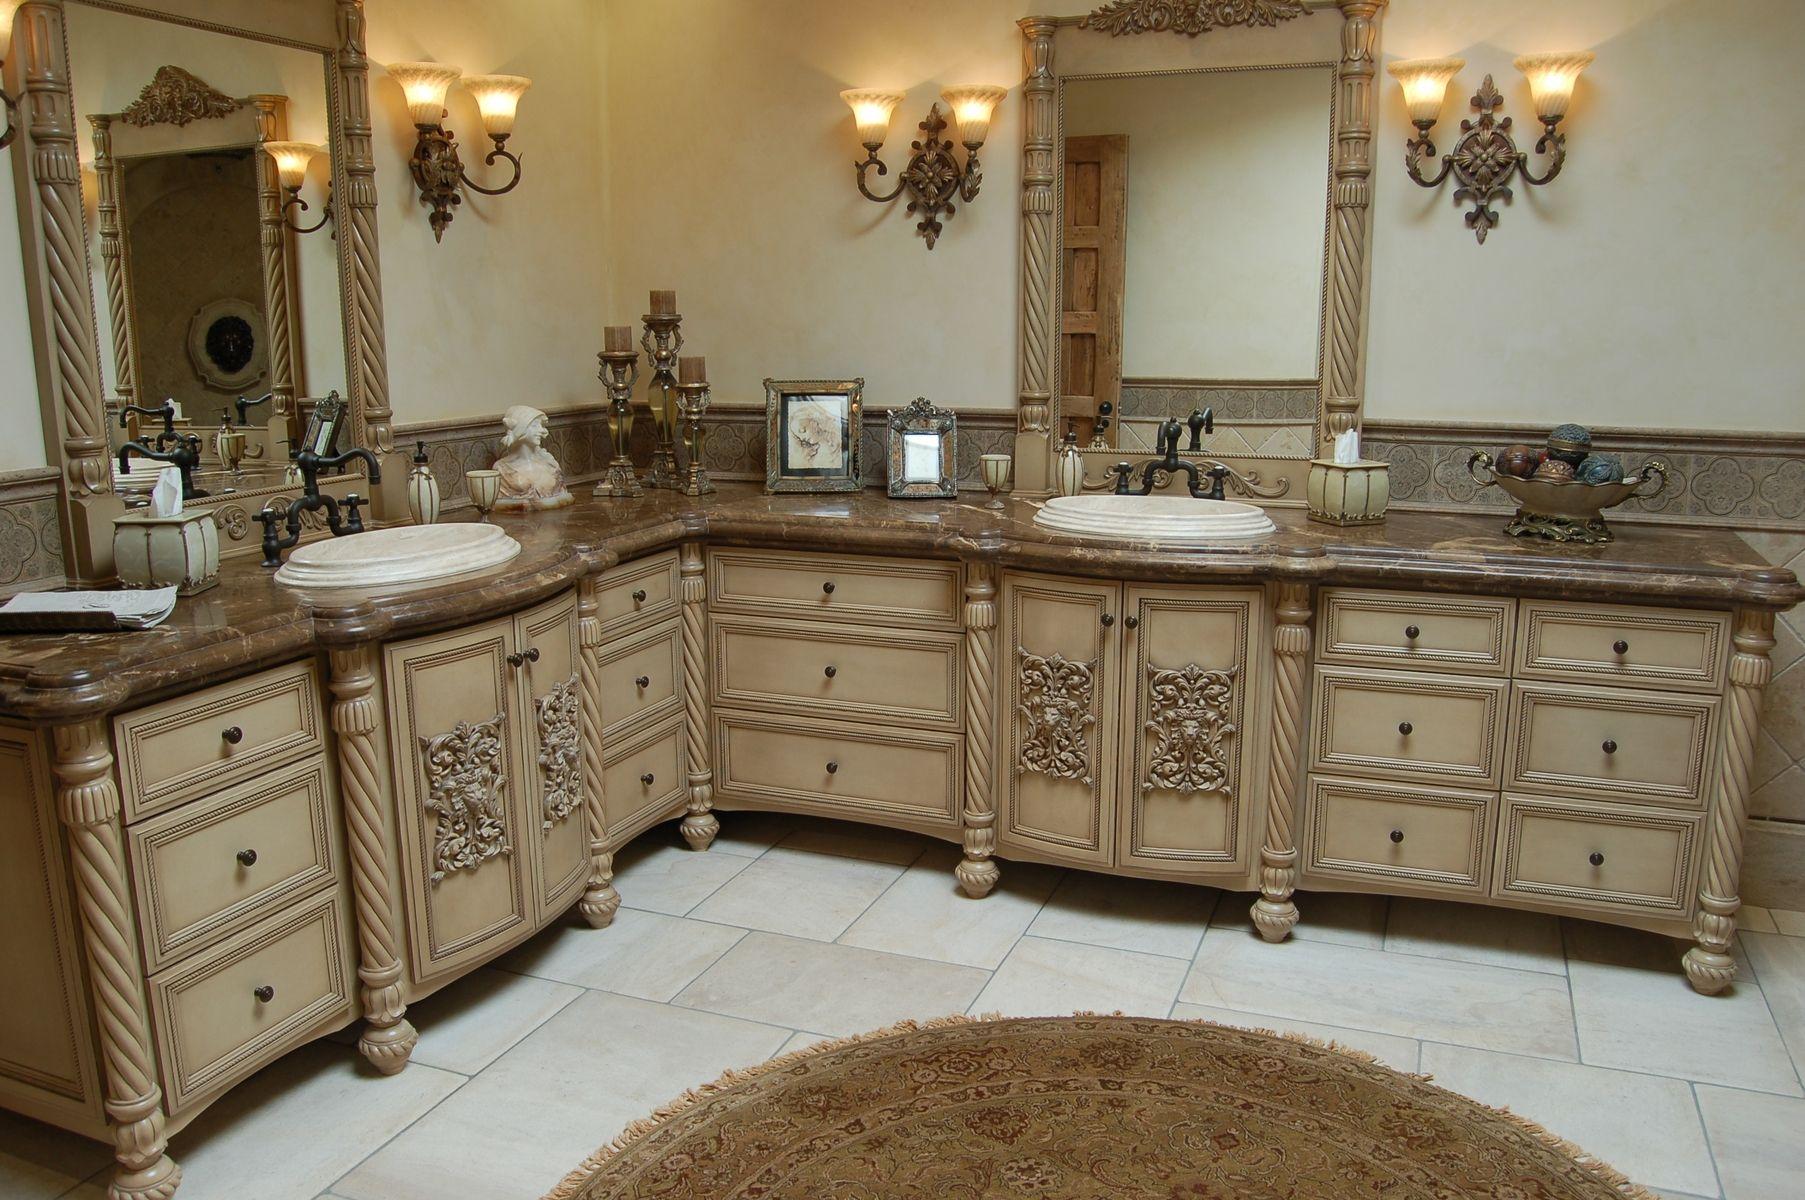 handmade custom faux finish master bathroom cabinets.westend